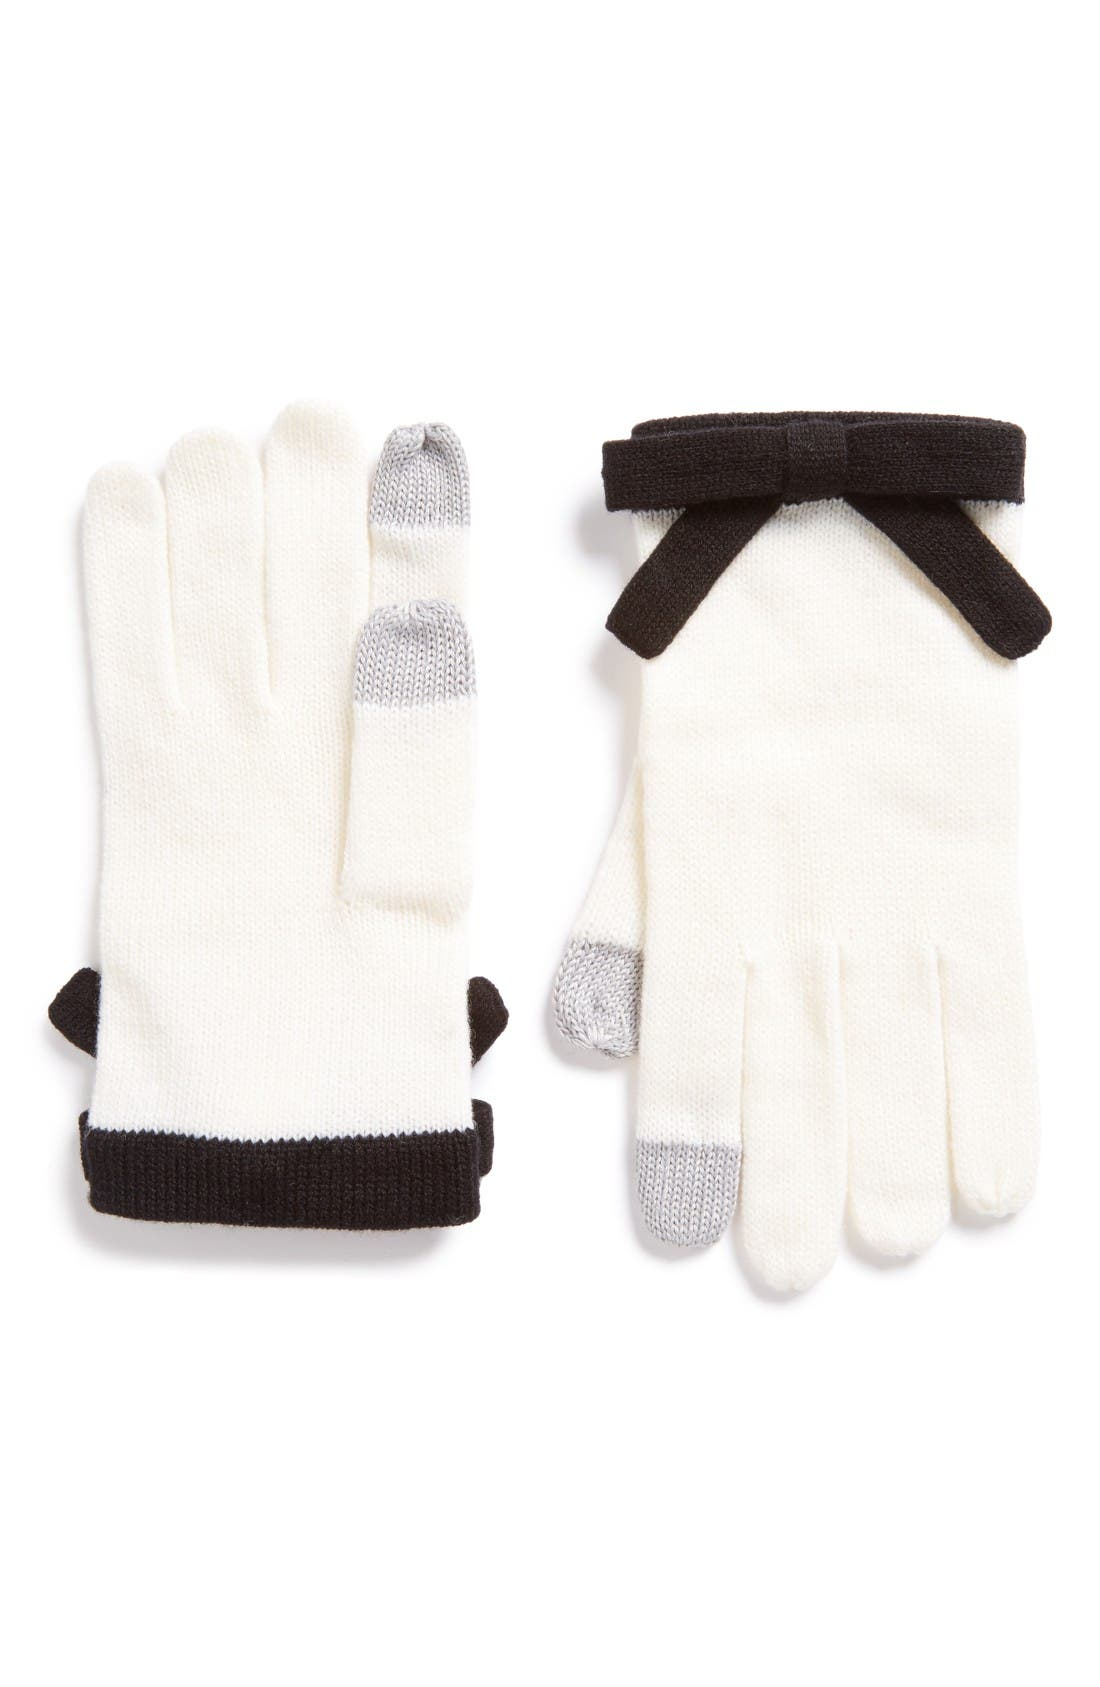 Alternate Image 1 Selected - kate spade new york contrast bow tech friendly gloves